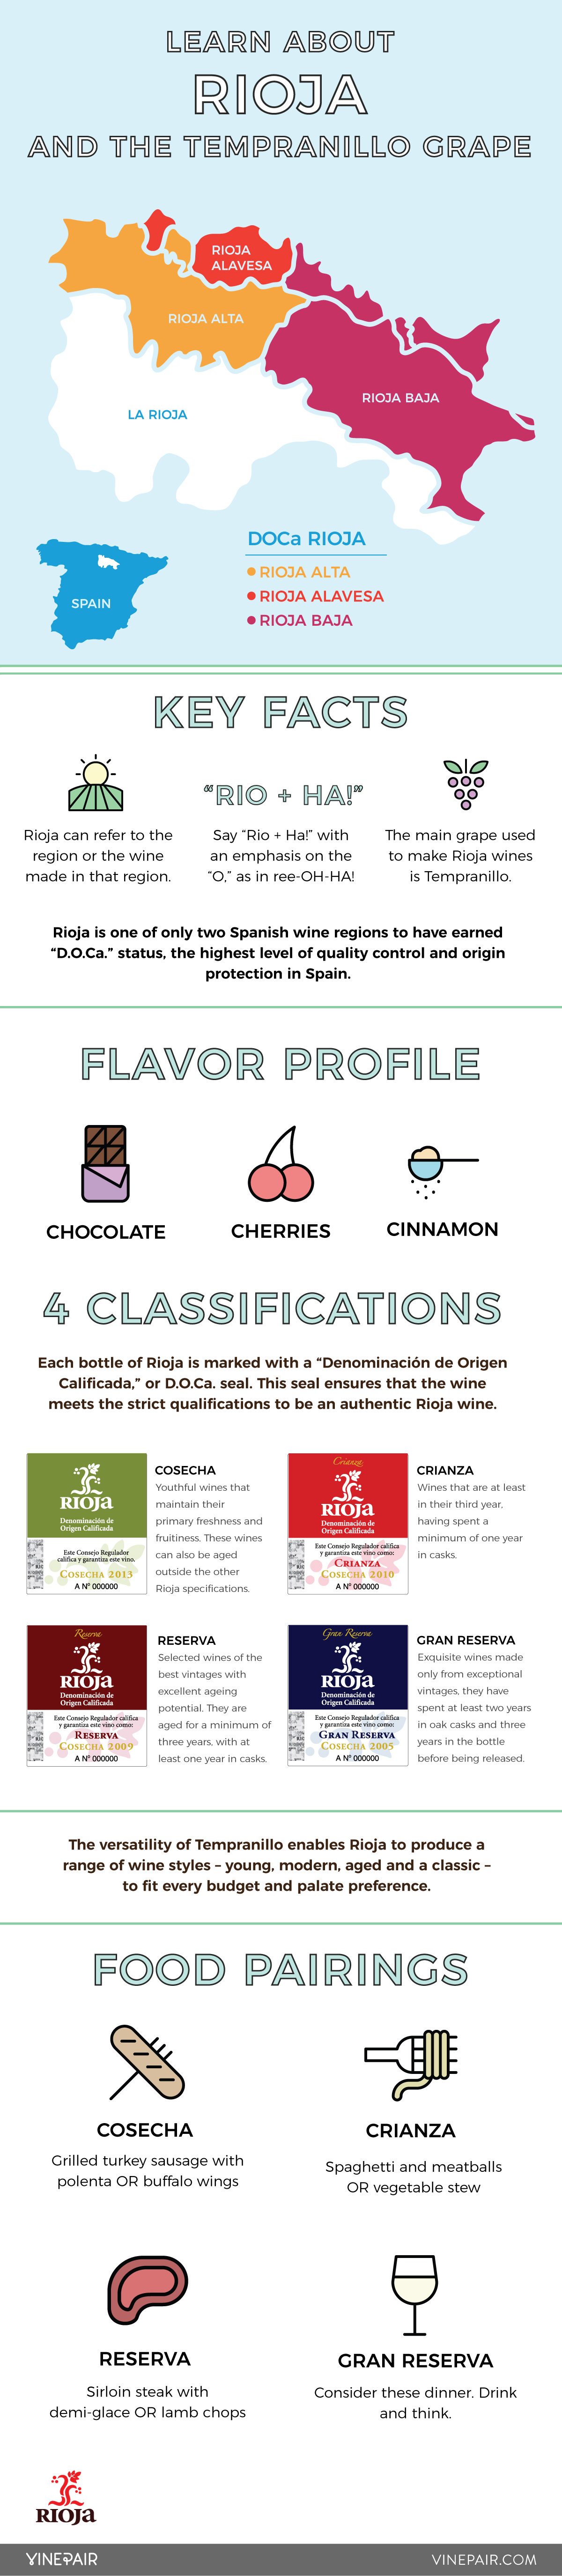 The Complete Guide To Rioja And The Tempranillo Grape - Infographic